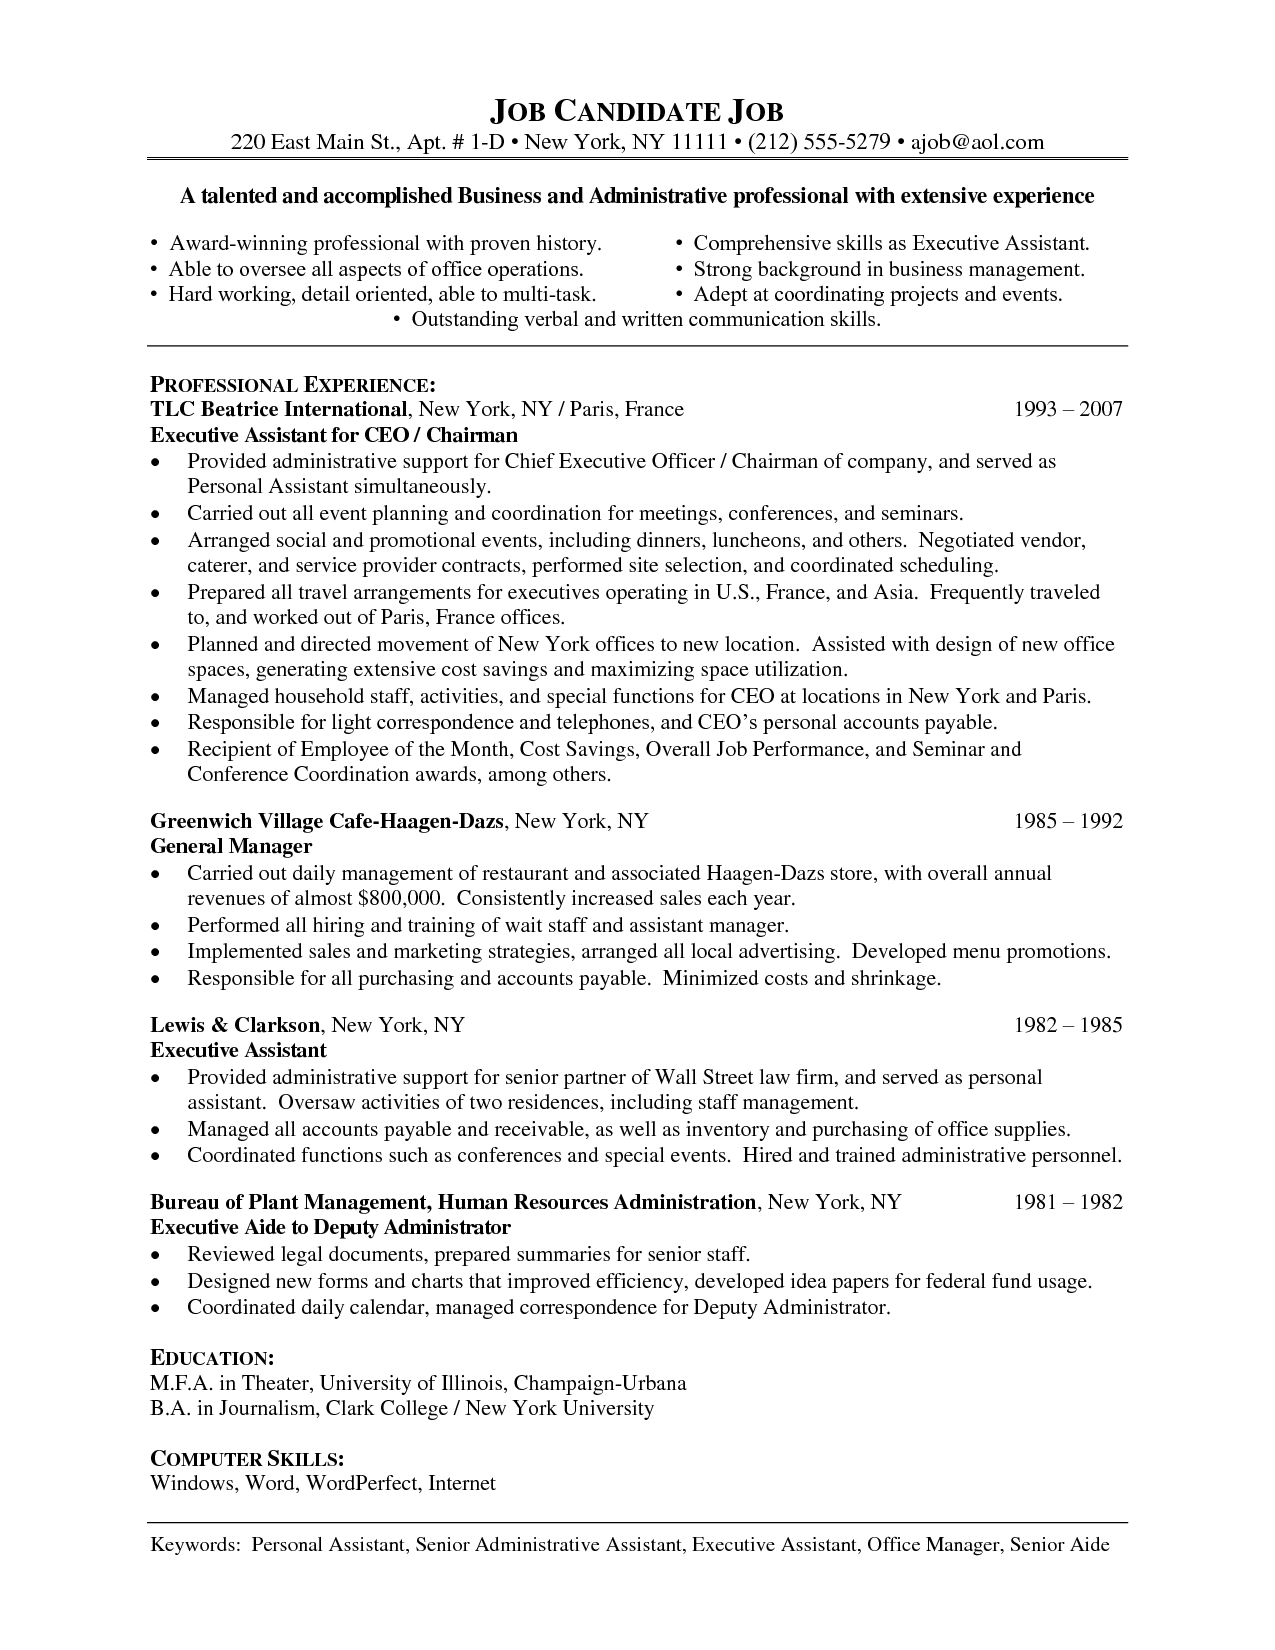 Human Resources Assistant Resume Sample Extraordinary Office Admin Resume Sample System Administrator Linux Professional .